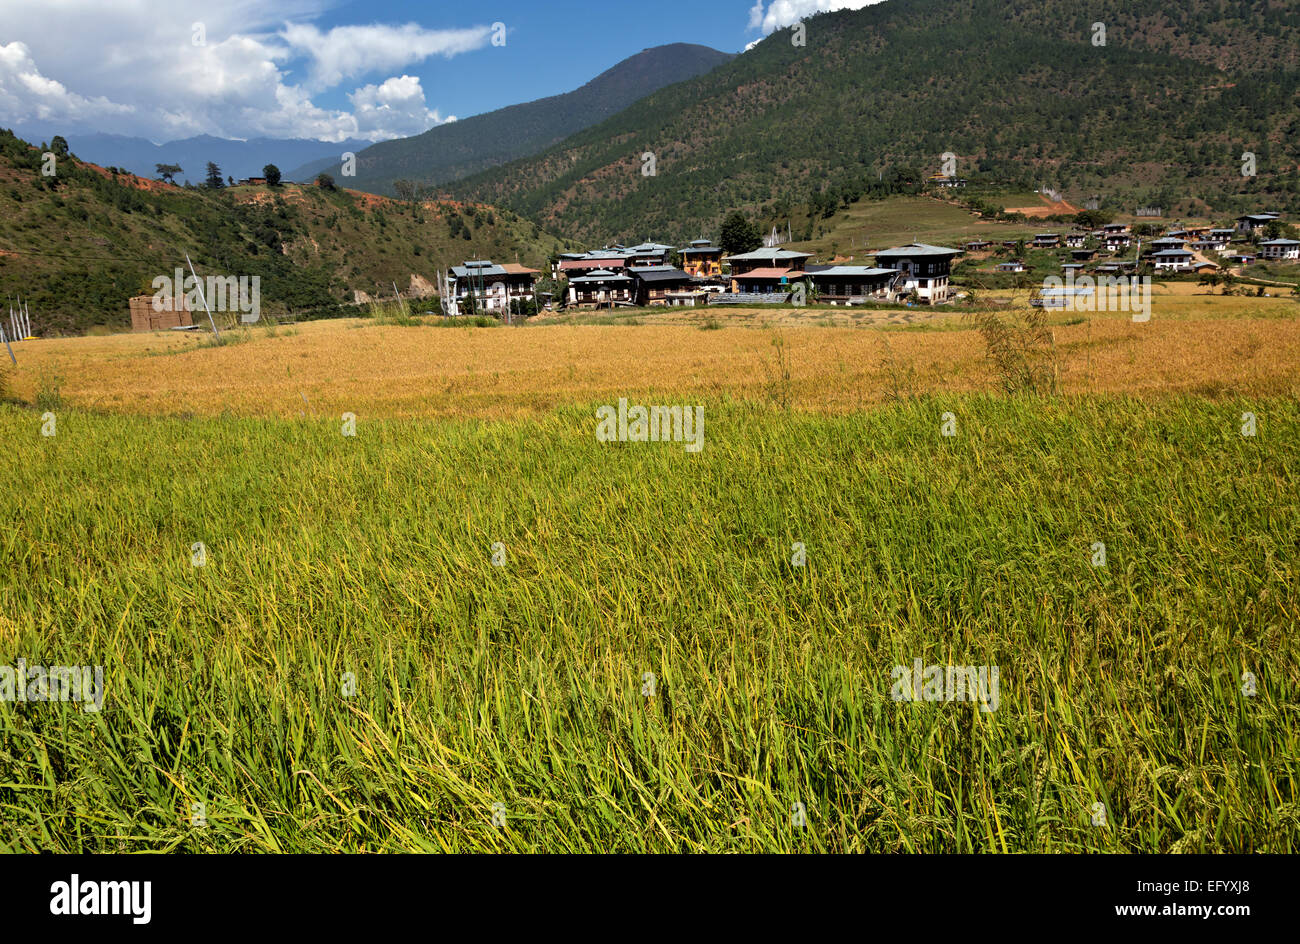 BHUTAN - Rice fields and town of Yoaka below the Chimi Lhakhang built to honor Lama Drukpa Kunley, known as the - Stock Image